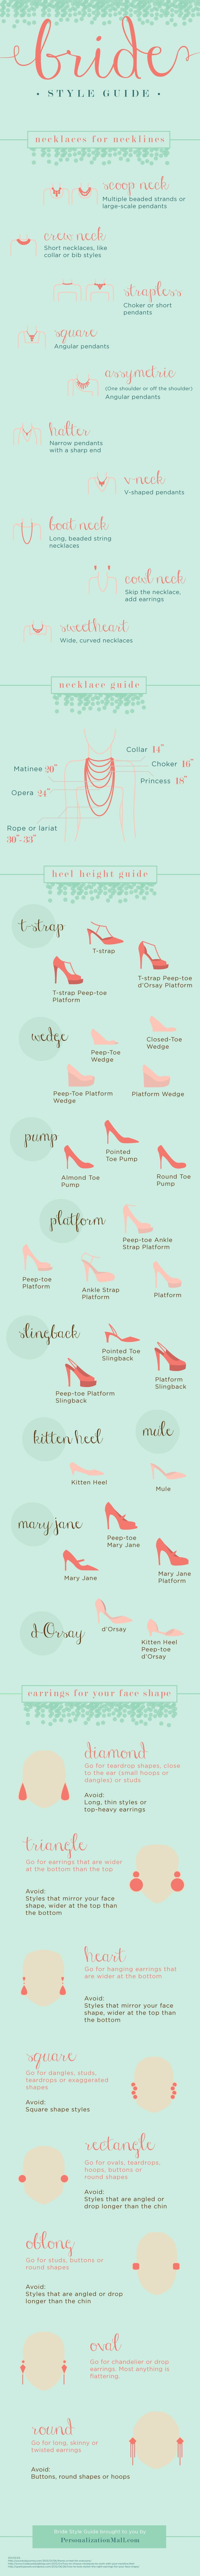 Check out this awesome bridal accessory guide that helps you find the perfect jewelry and shoes for your Wedding Day! http://www.stelladot.com/paolaking http://www.adlero.com